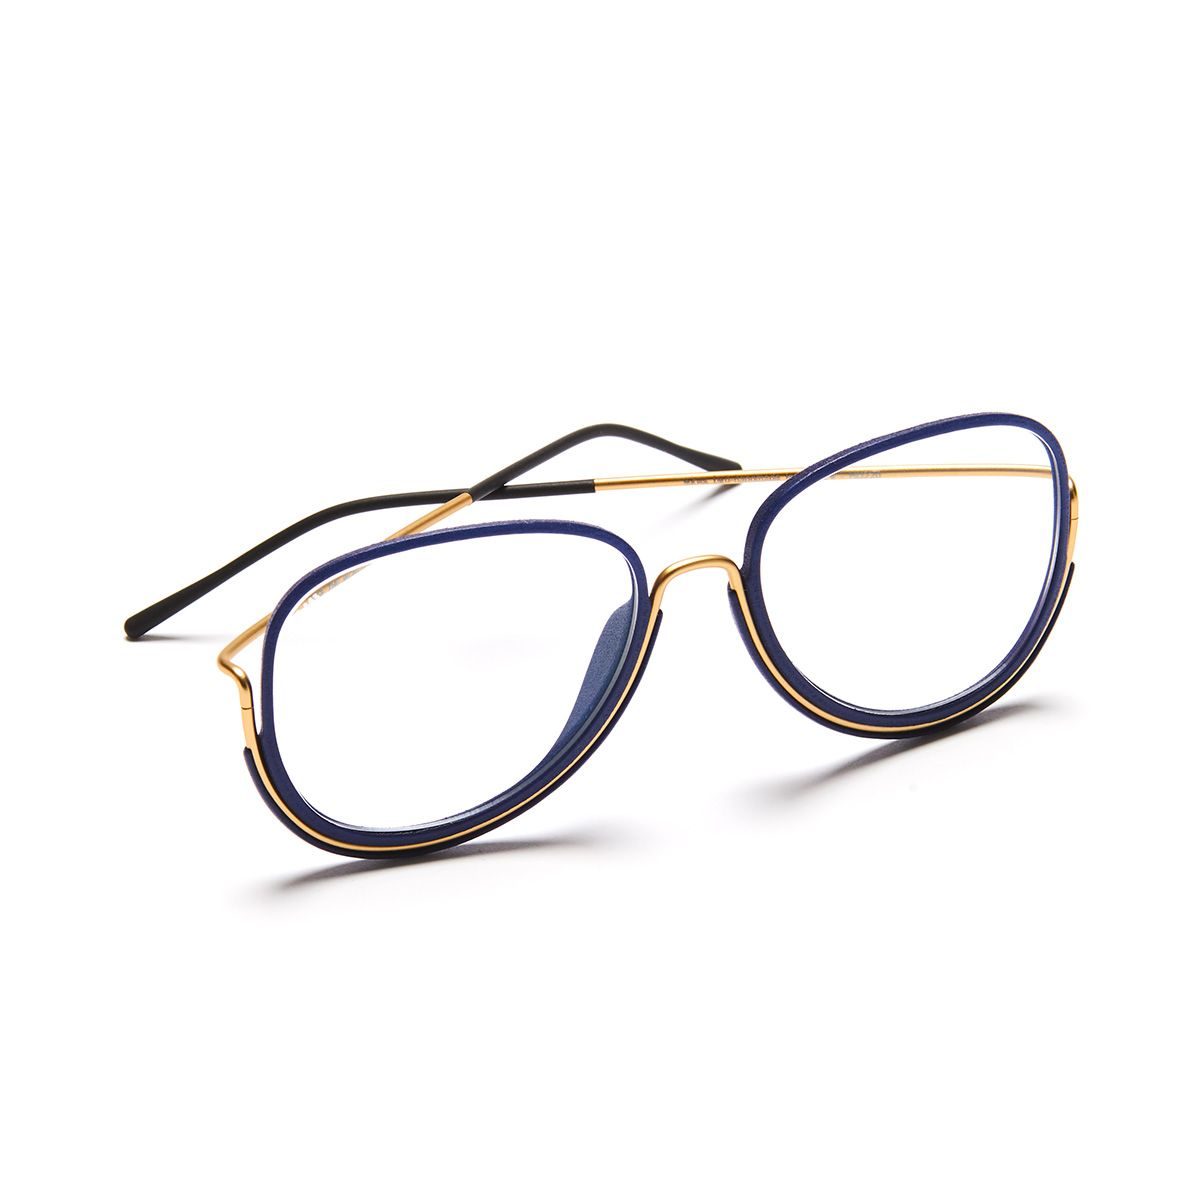 Wires Earhart - Gold/Lunar Blue